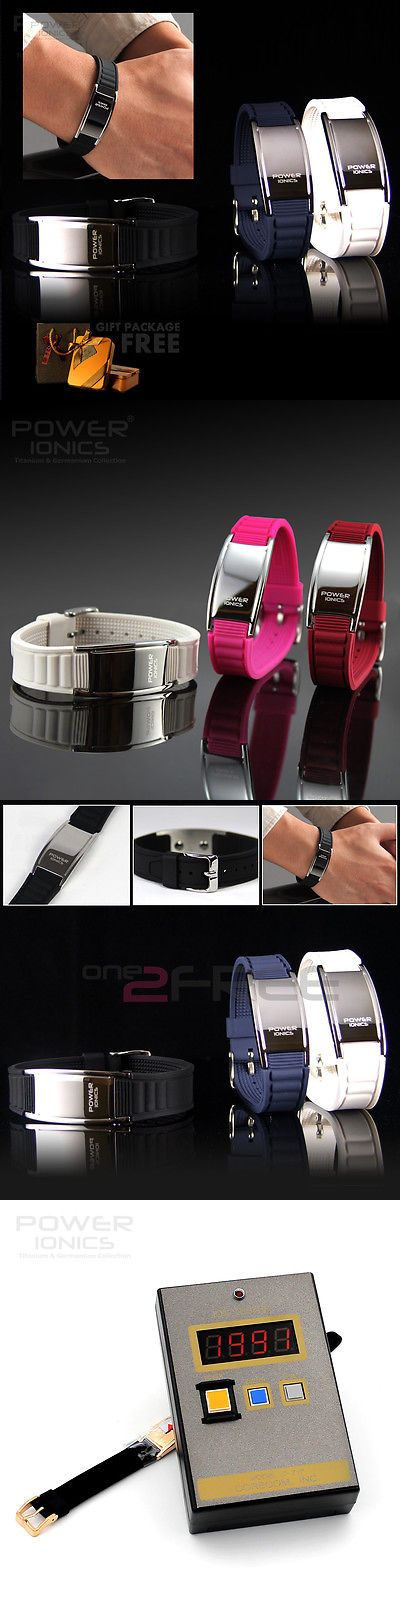 Other Golf Clothing 158939: Power Ionics Titanium Magnetic 2000Ions Bracelet Energy Wristband Free Gift Pack -> BUY IT NOW ONLY: $32.99 on eBay!